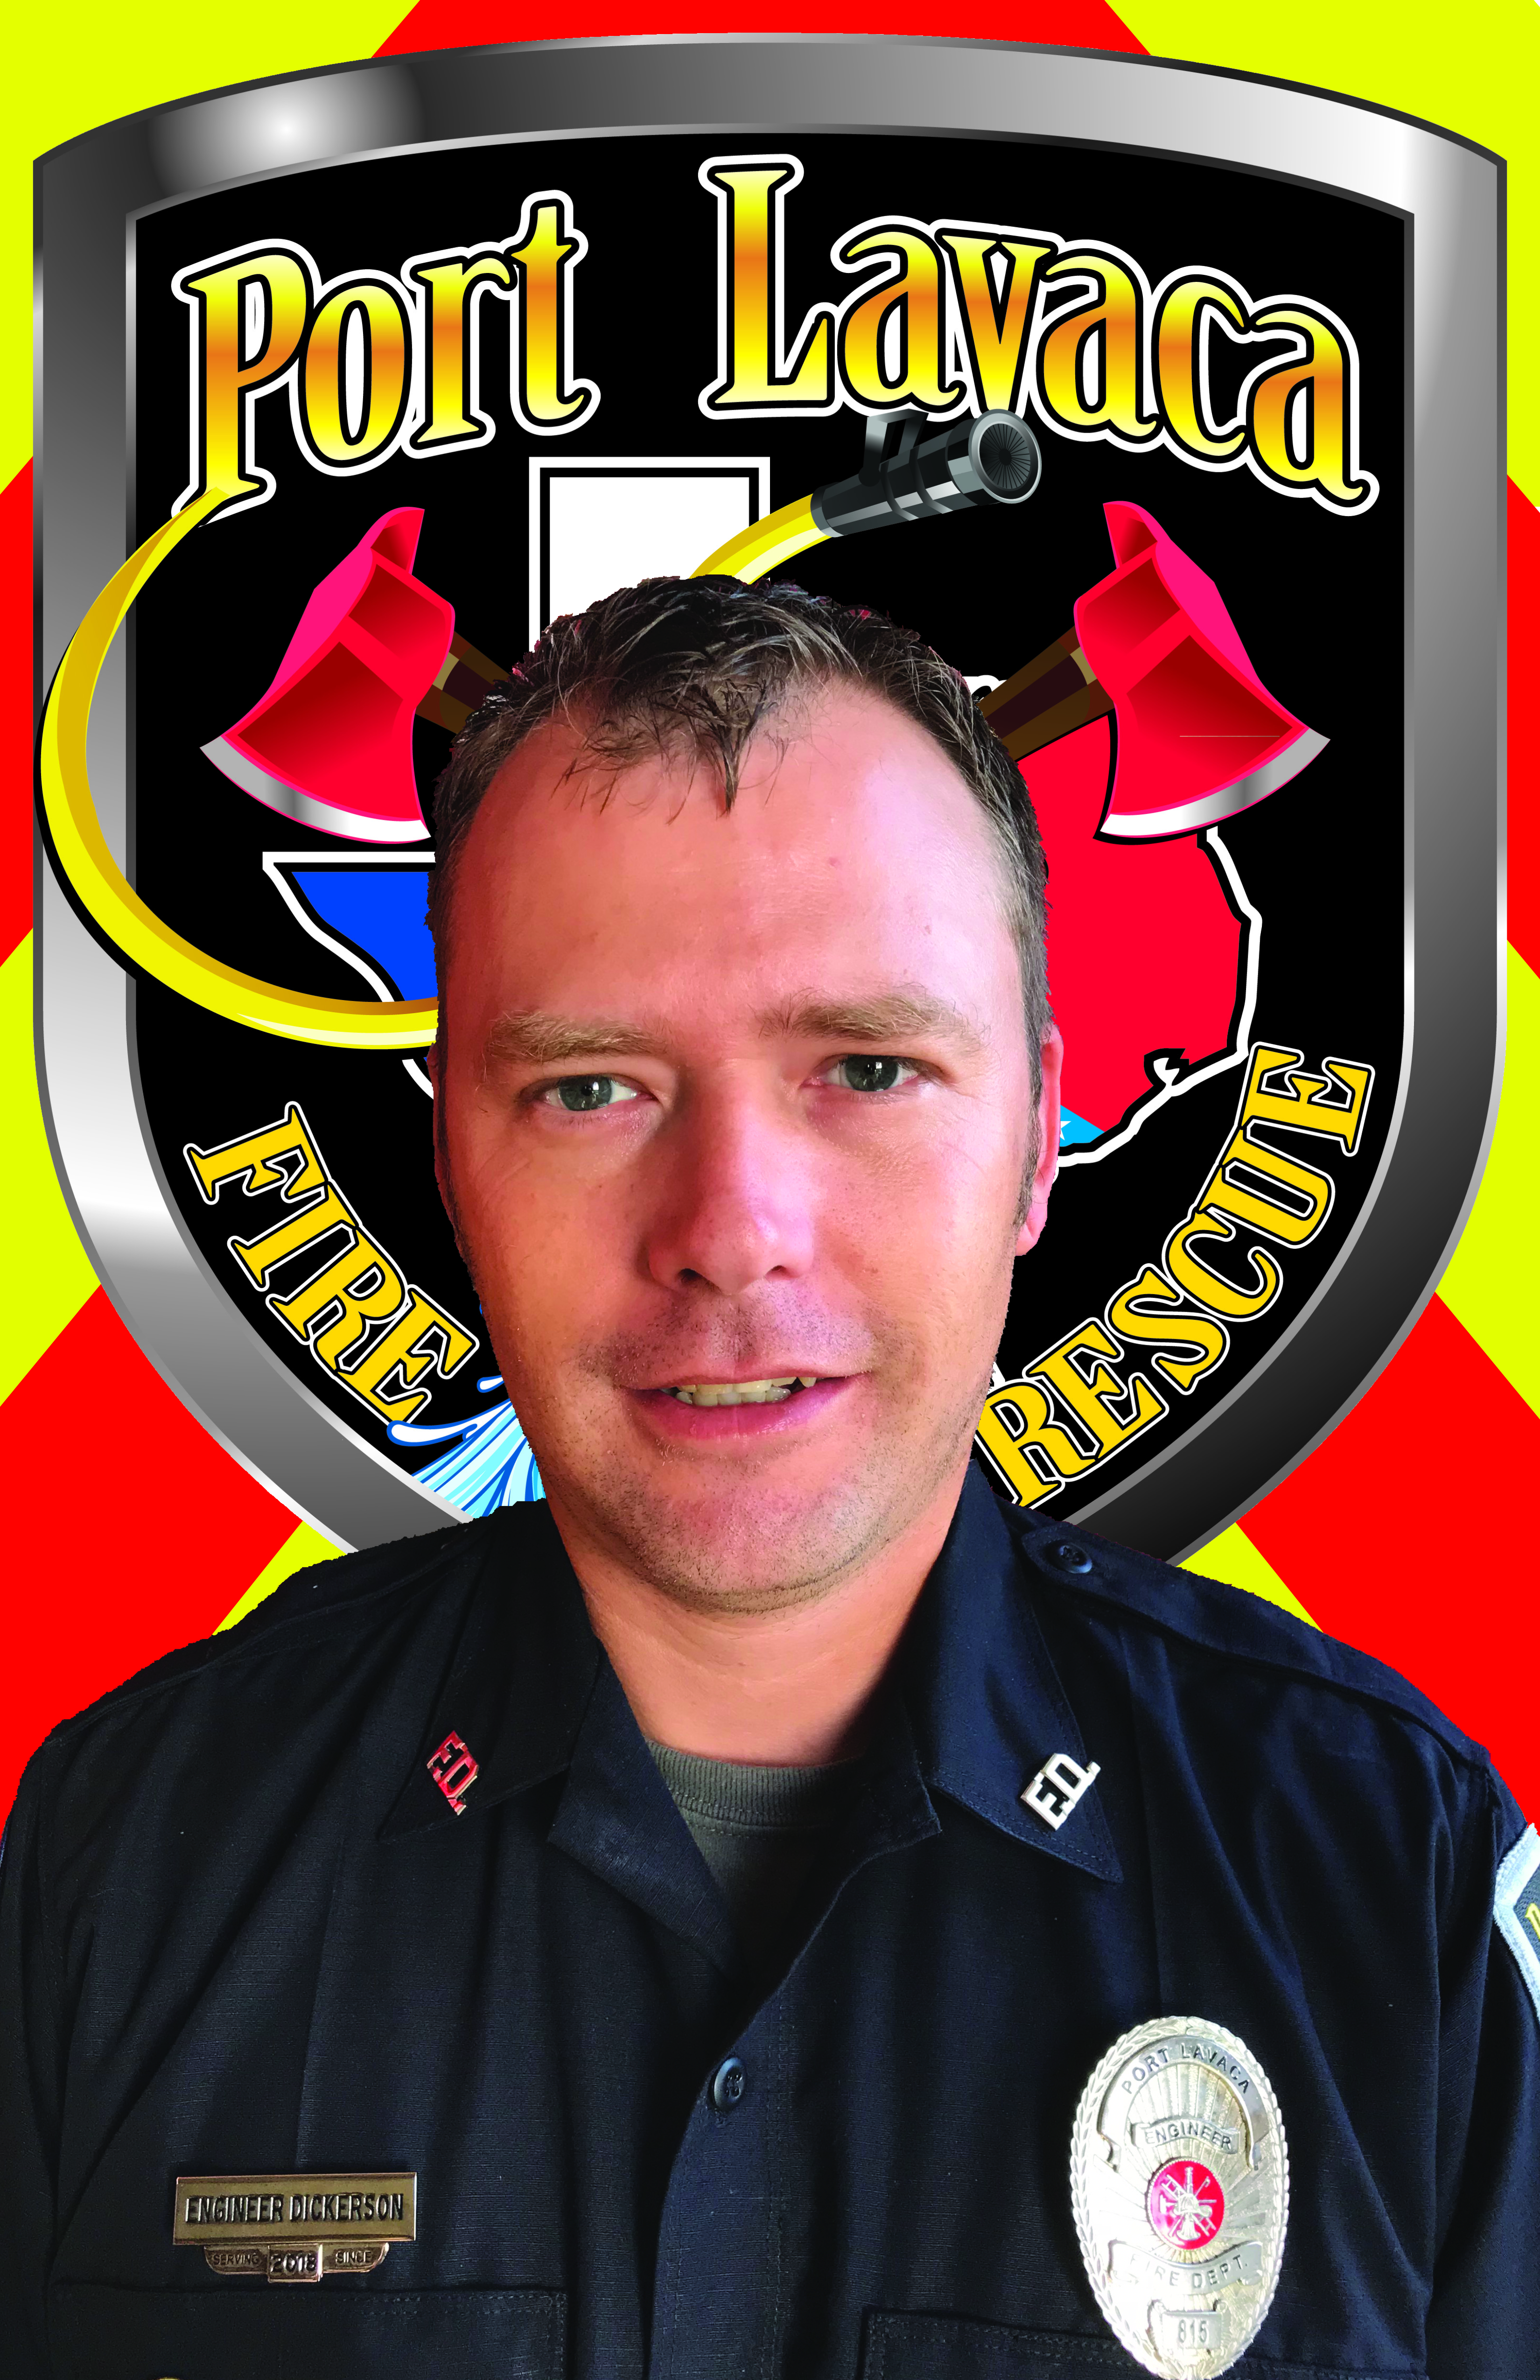 Firefighter Dickerson